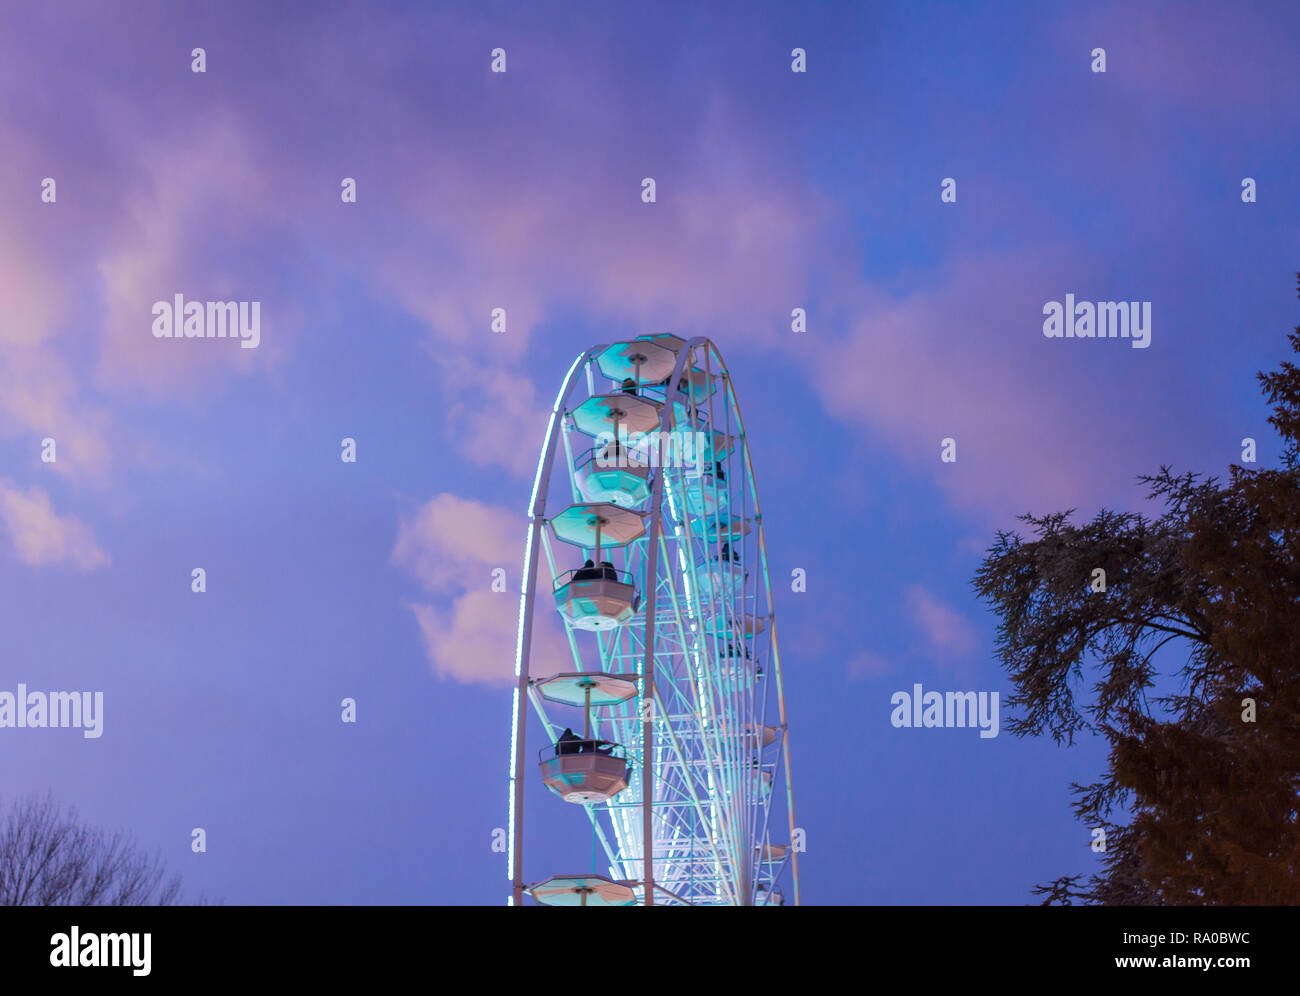 The big ferris wheel on background of sunny blue sky Stock Photo